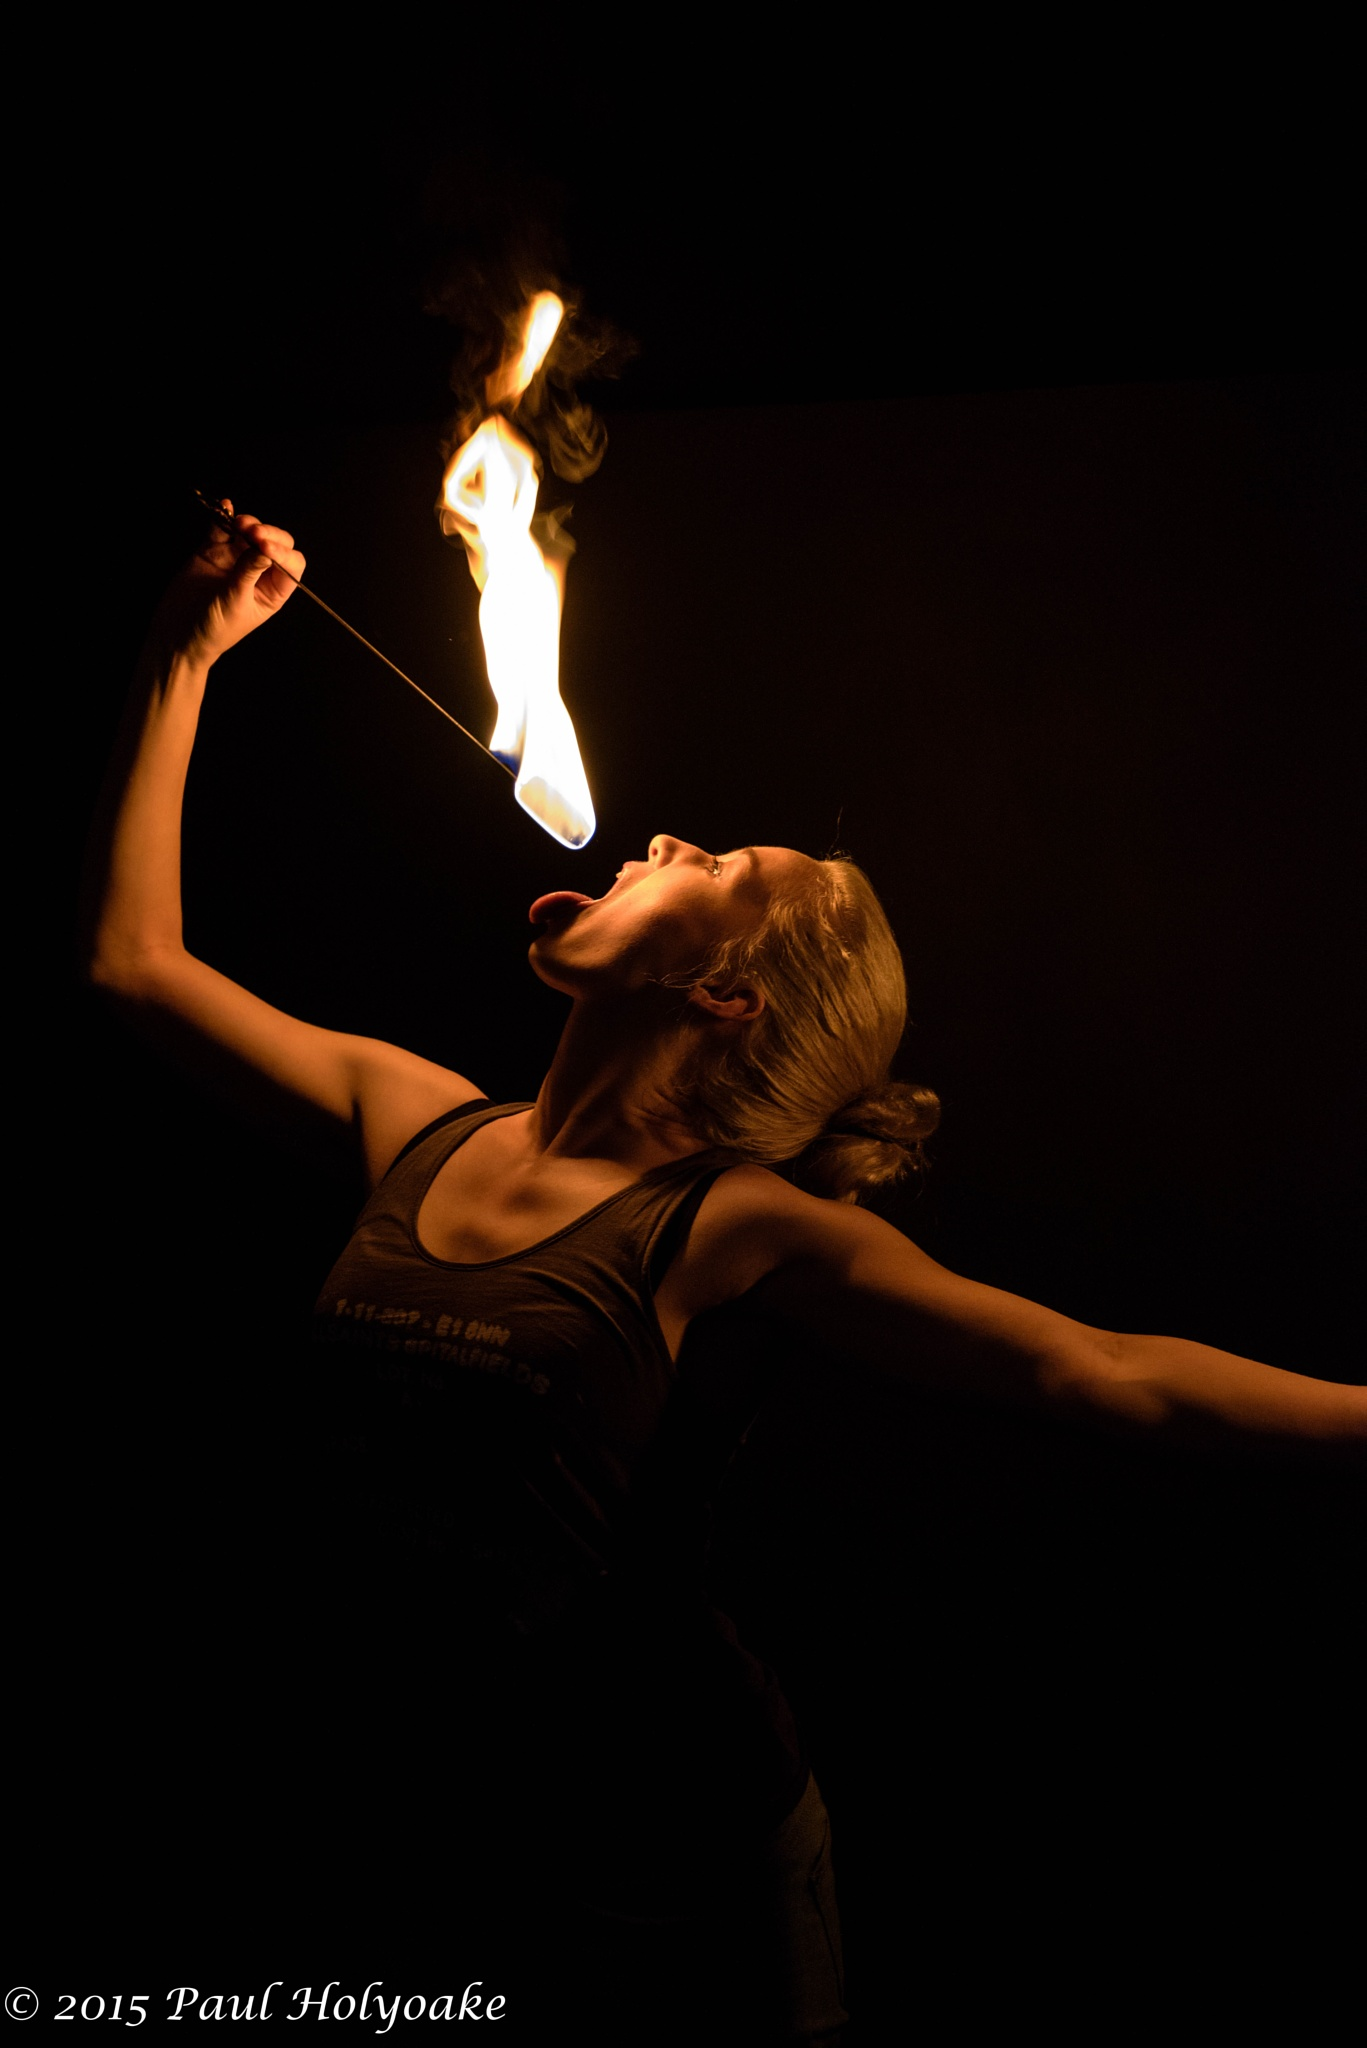 Fire Eating by Photon